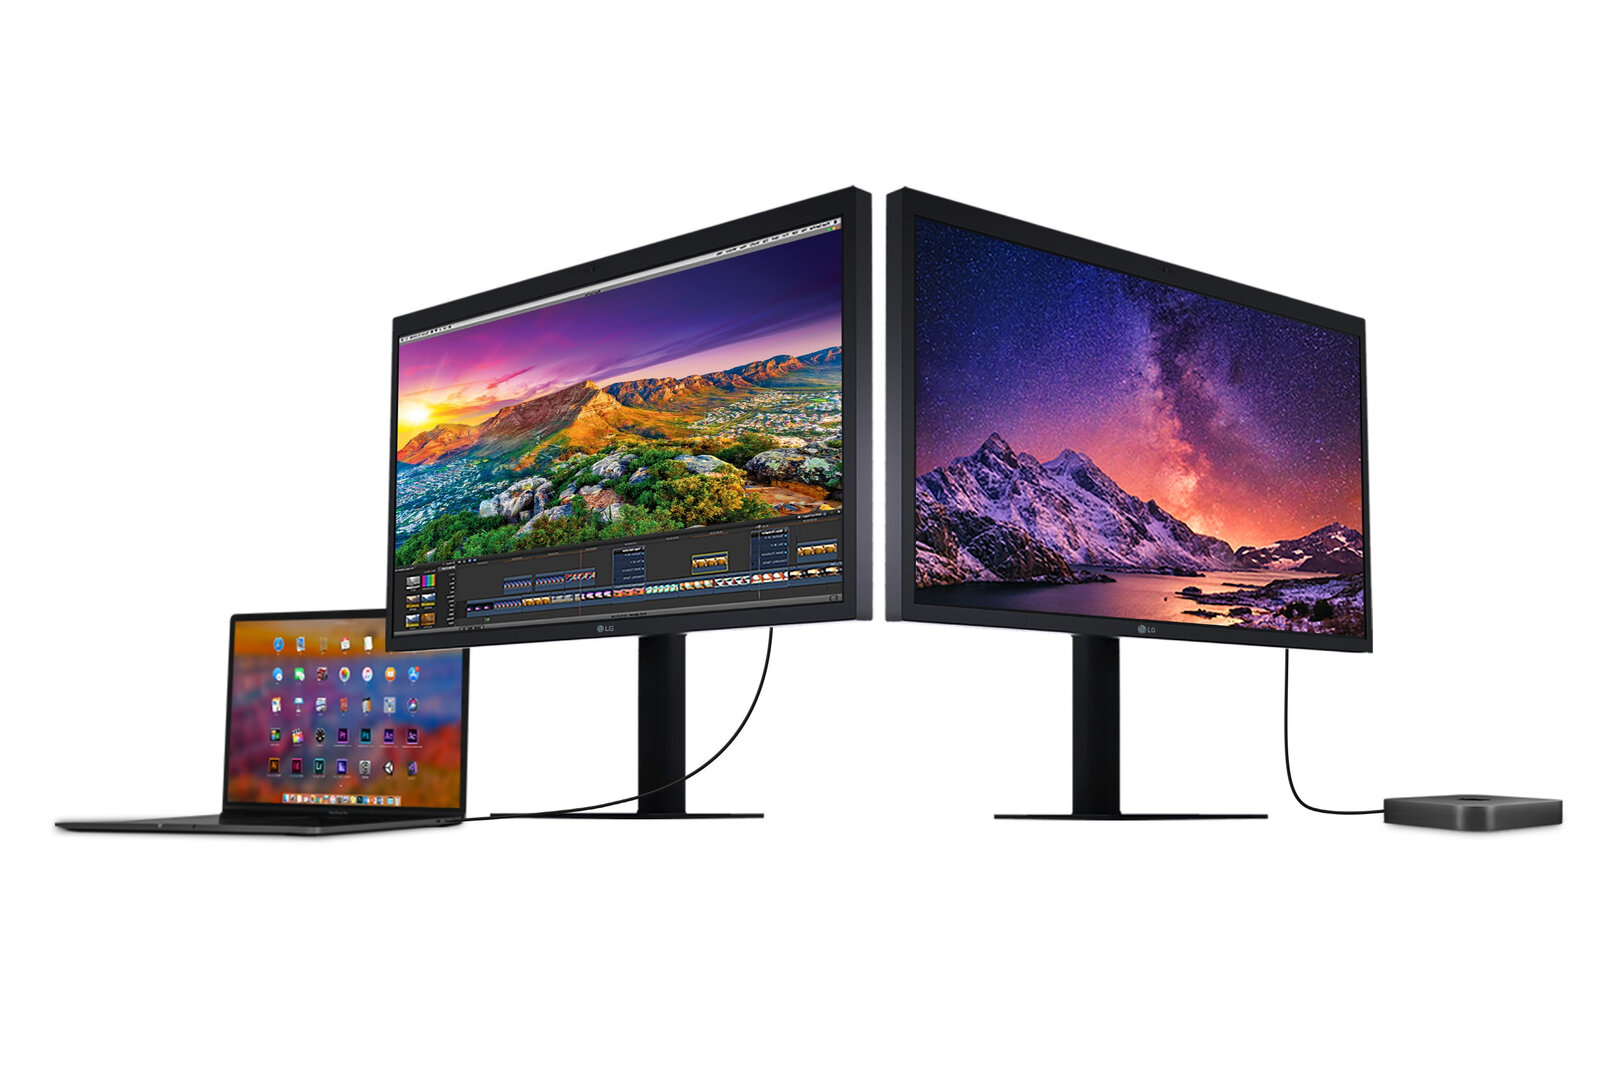 LG UltraFine 5K (27MD5KL)